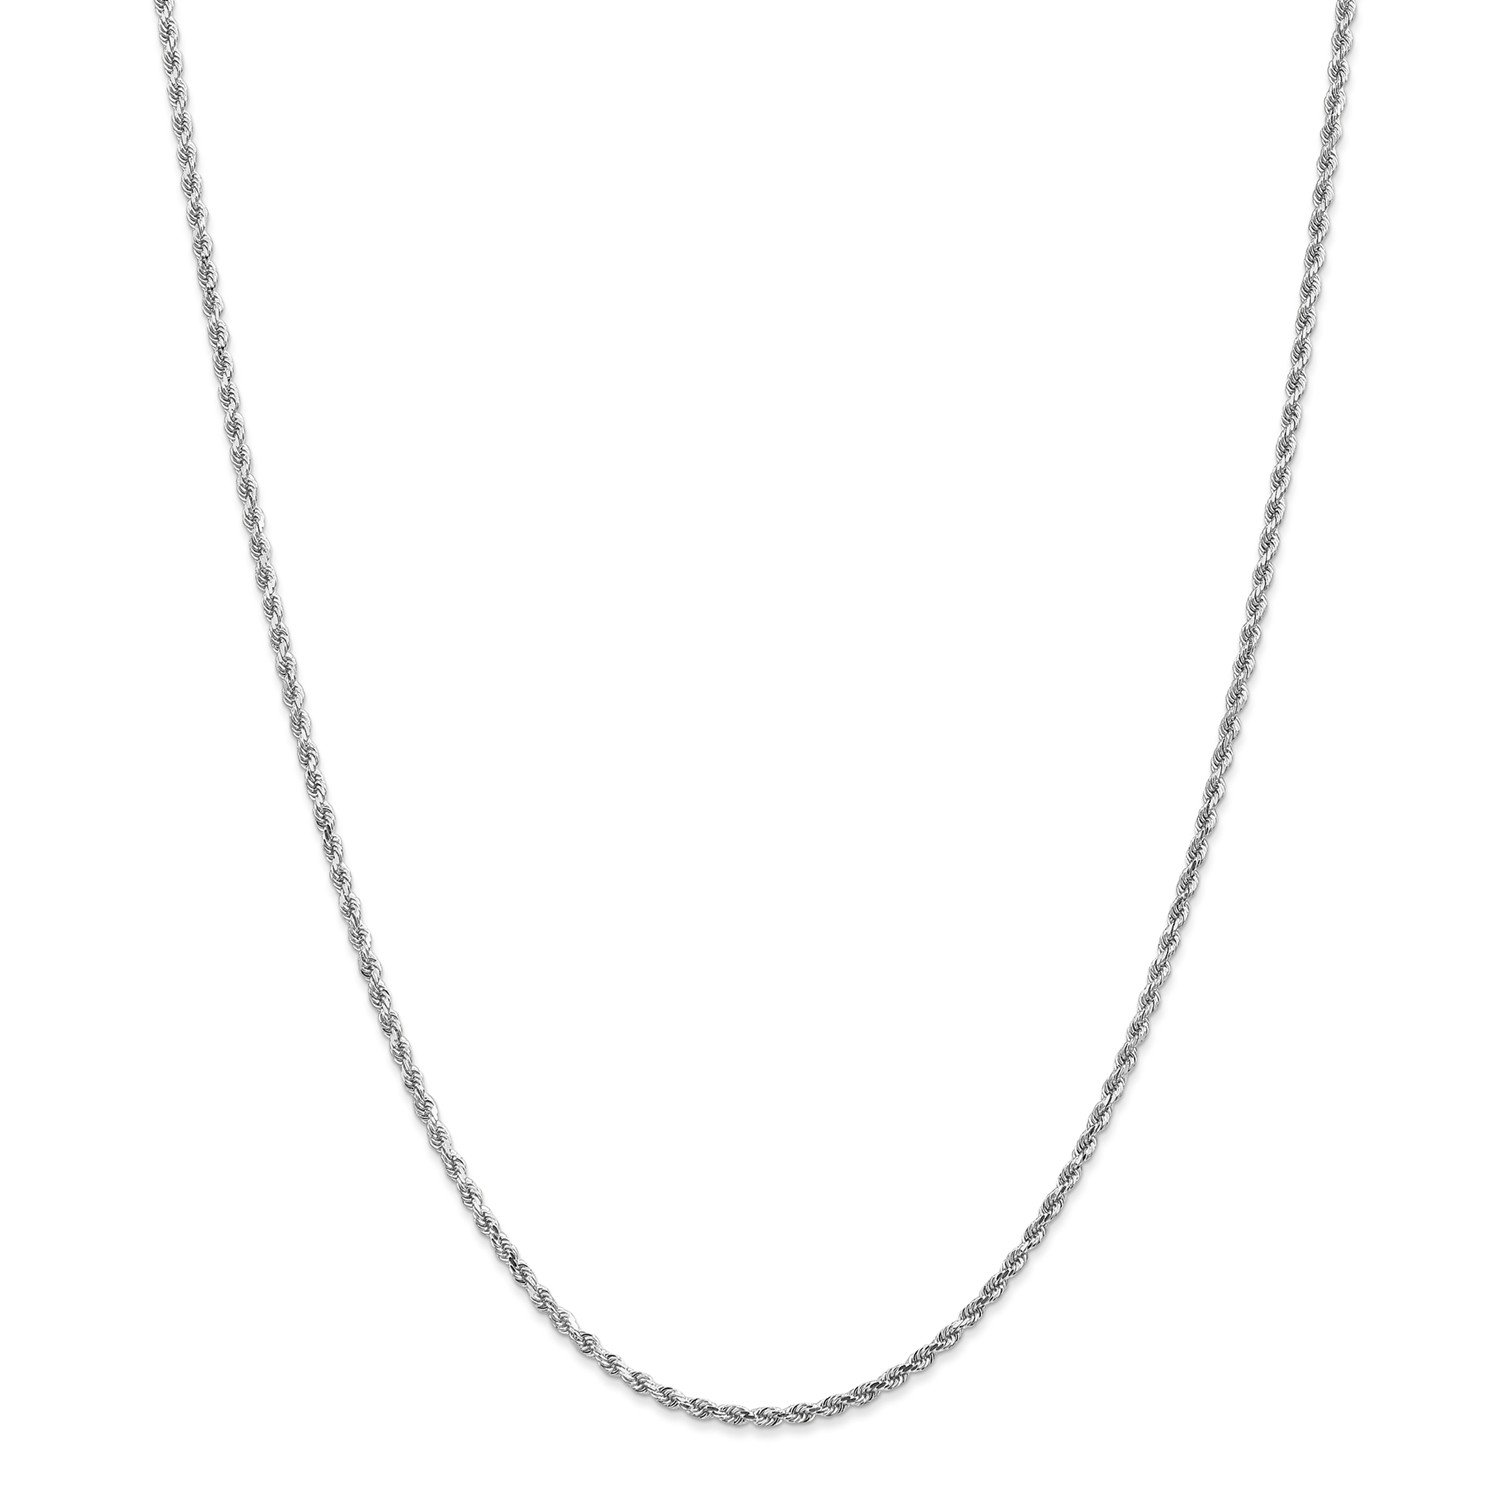 Roy Rose Jewelry Leslies 14K White Gold 2mm Diamond Cut Rope Chain Anklet Bracelet ~ Length 10'' inches